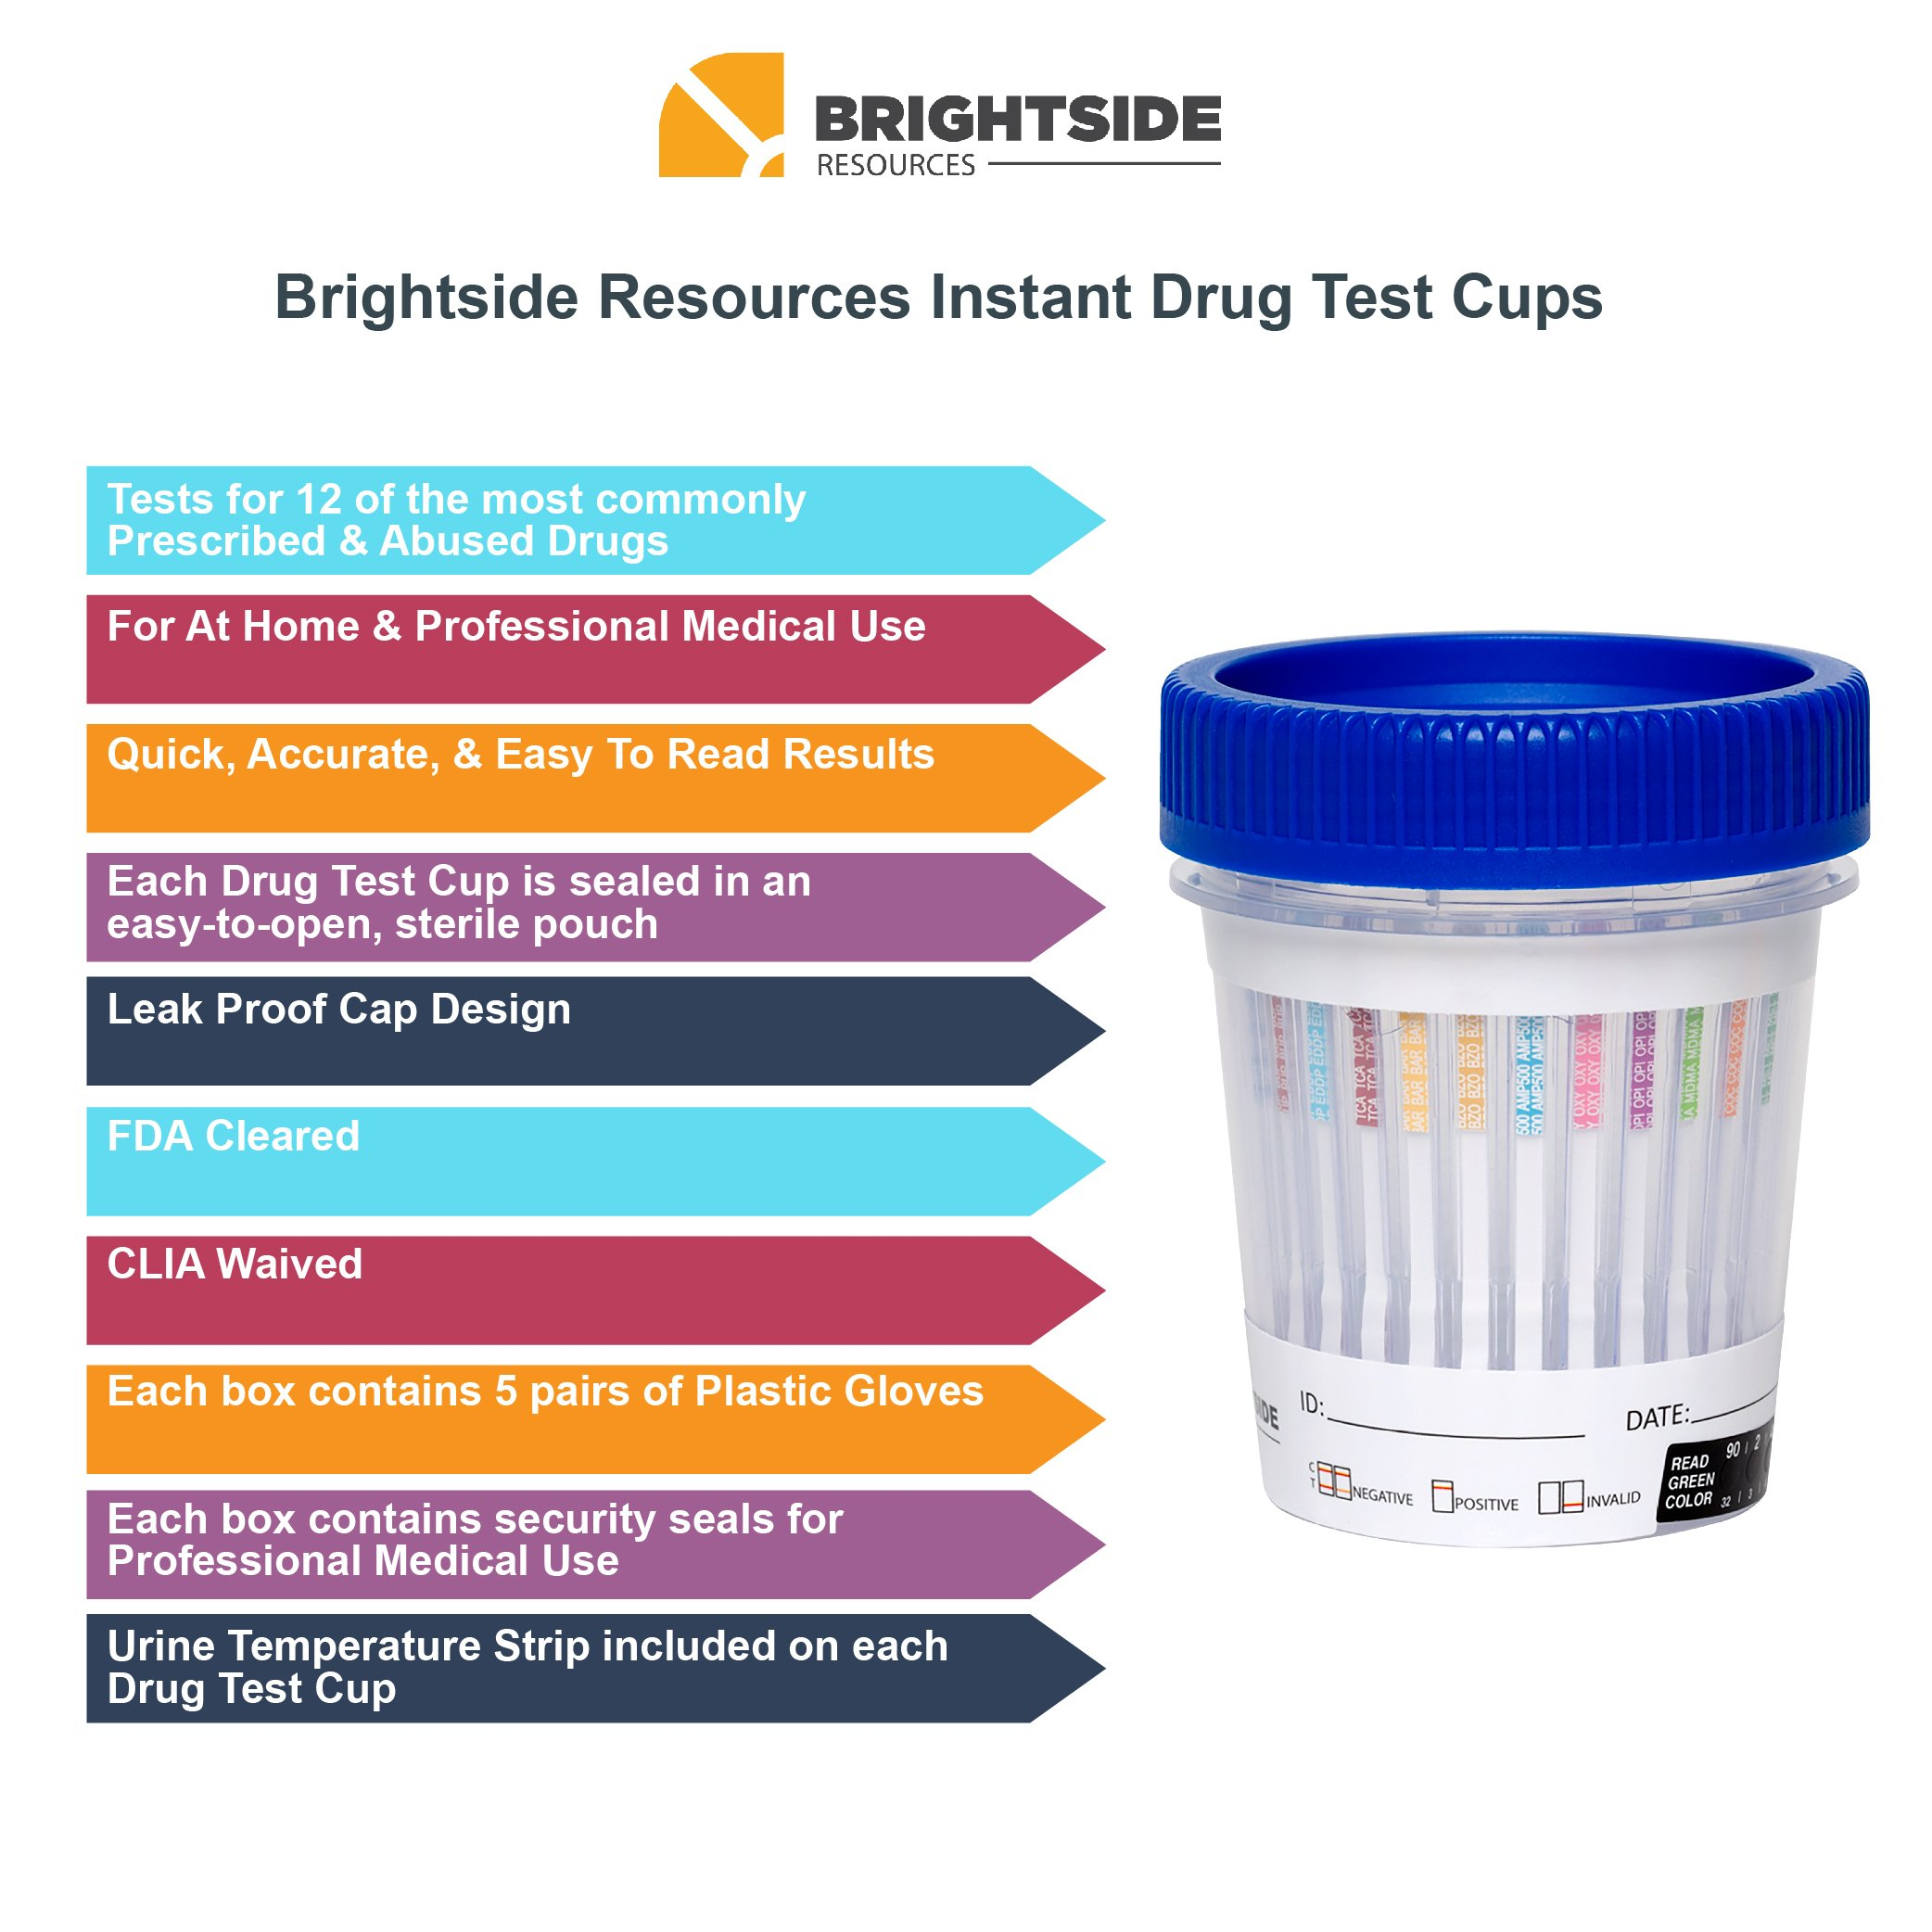 Brightside Resources 12 Panel Instant Urine Drug Test - Pack of 5 - for at Home & Medical Use - Accurate & Easy to Understand - THC, COC, OPI, OXY, Bar, TCA, MET, BZO, AMP, MDMA, BUP, Methadone by Brightside Resources (Image #4)